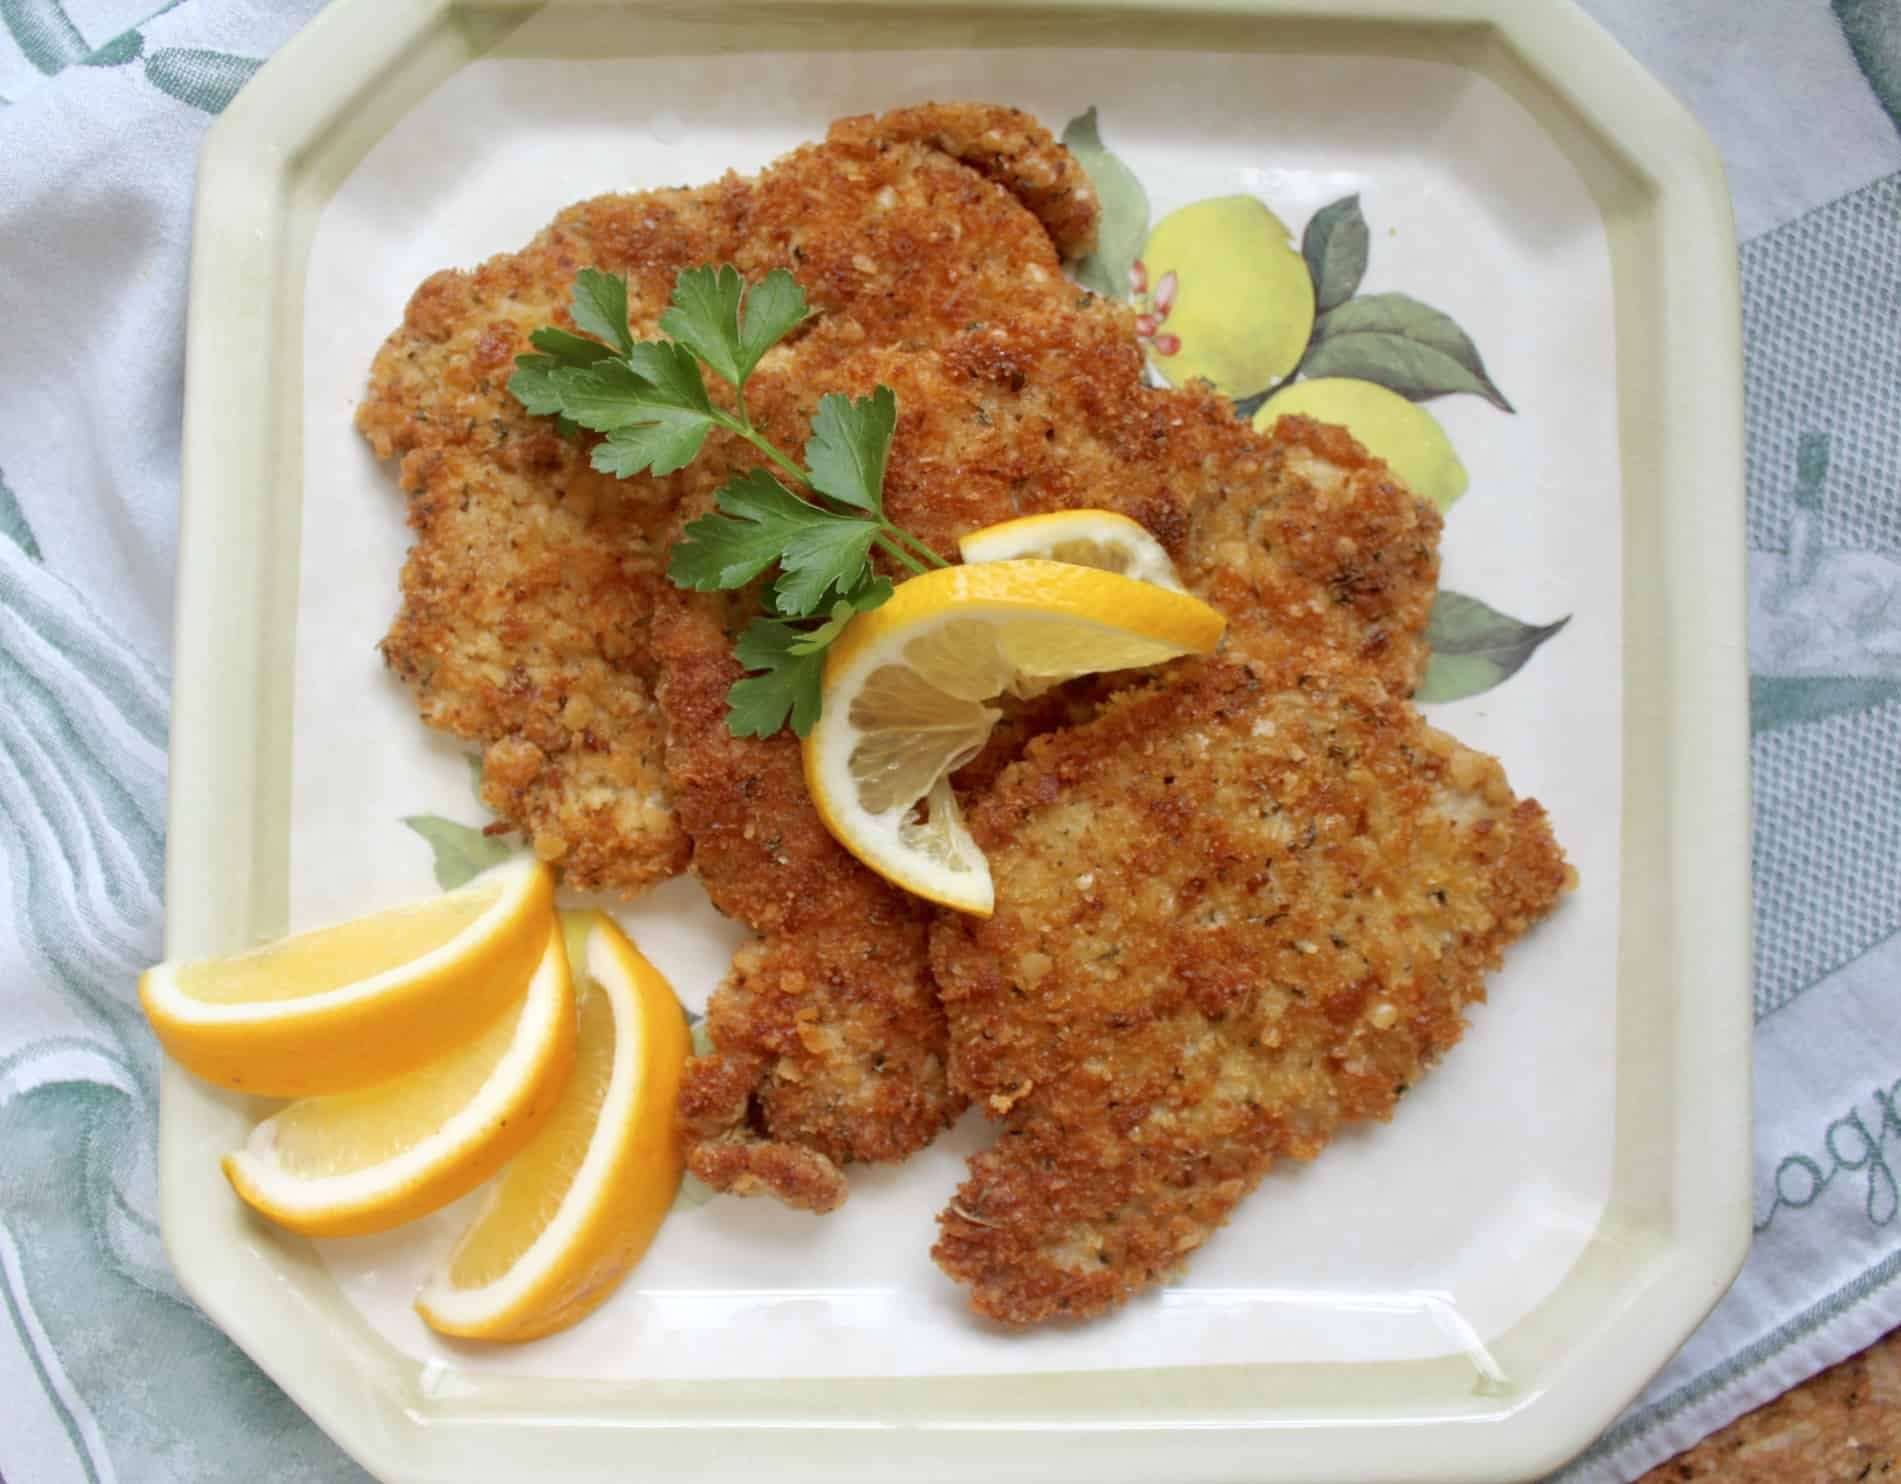 breaded pork schnitzel on a plate with lemon slices